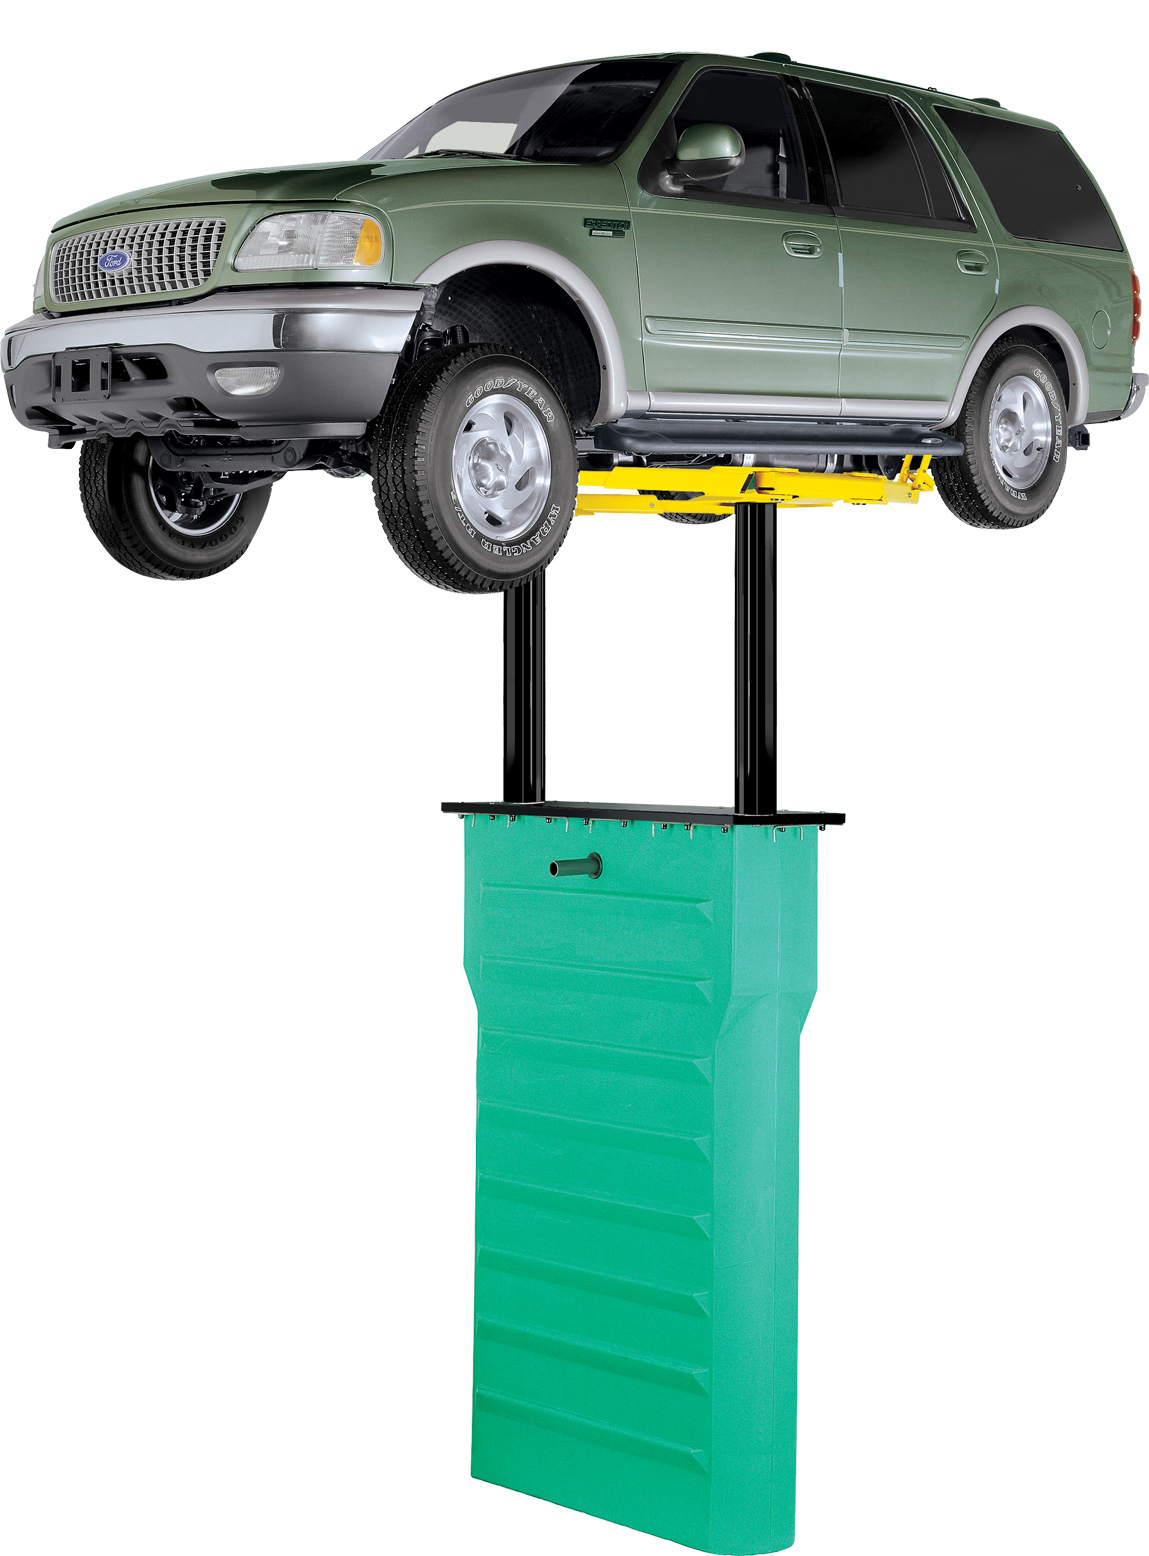 Inground auto lift for sale in connecticut